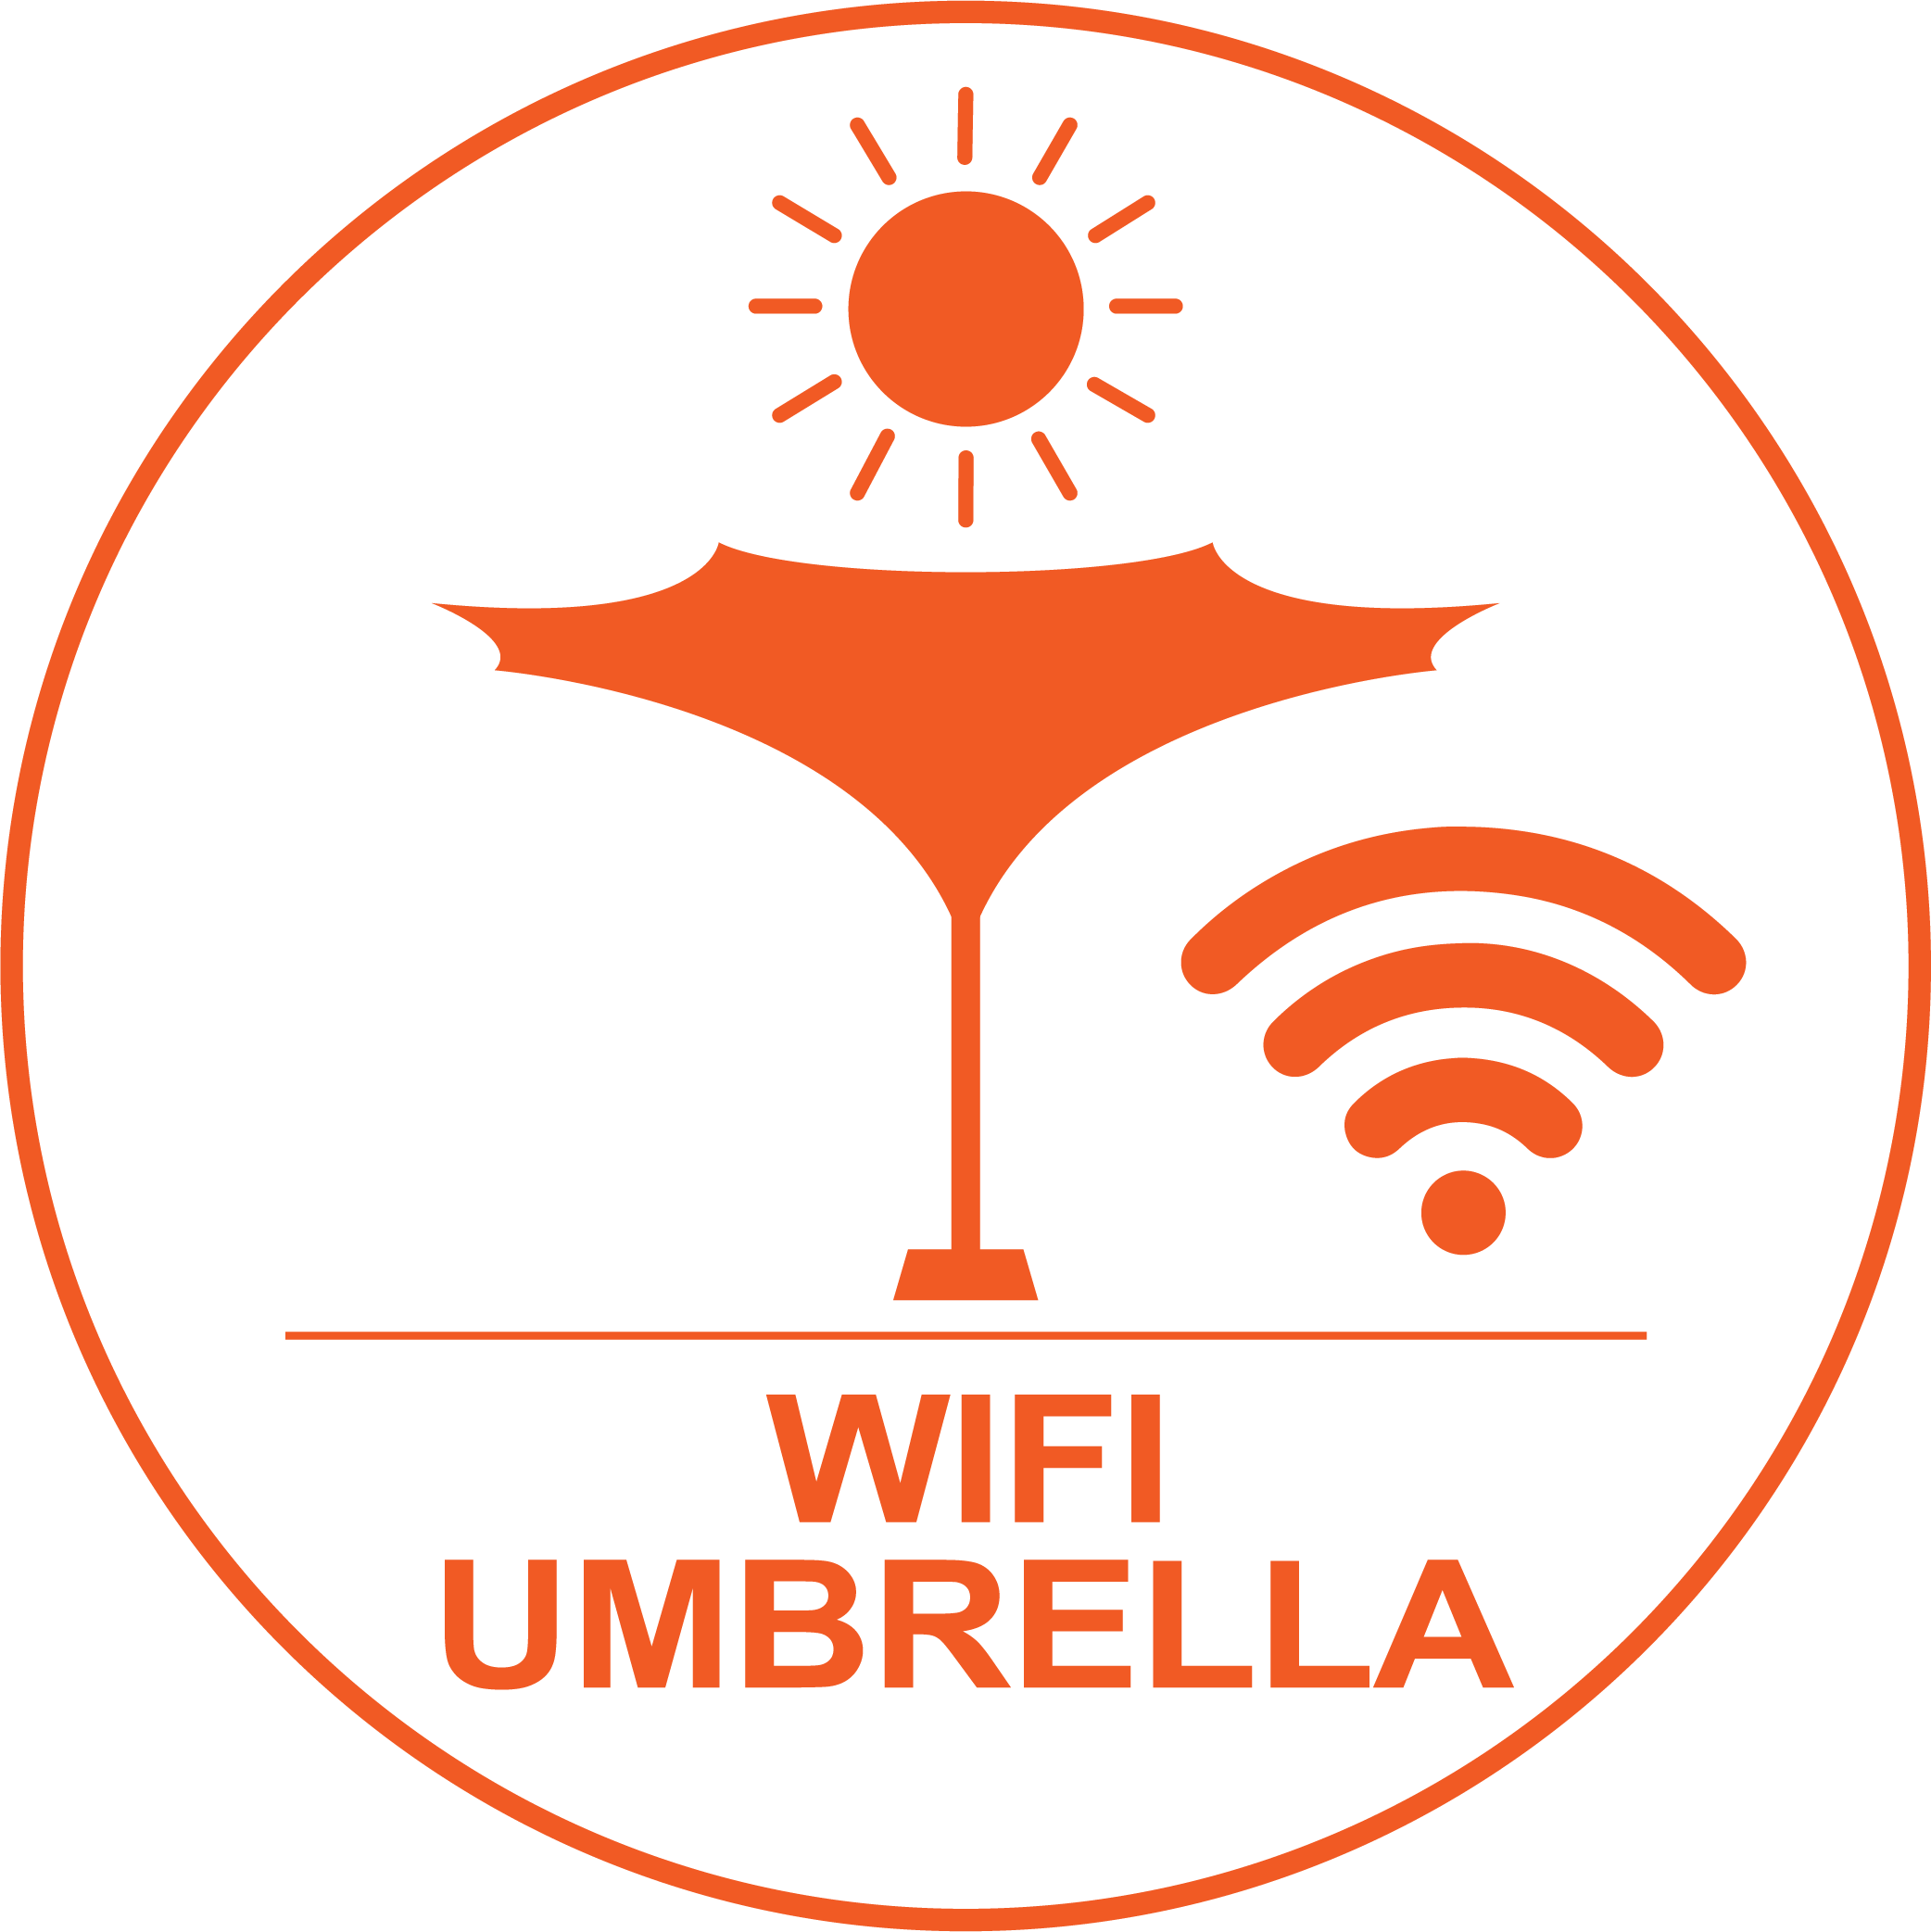 wifi umbrella.png